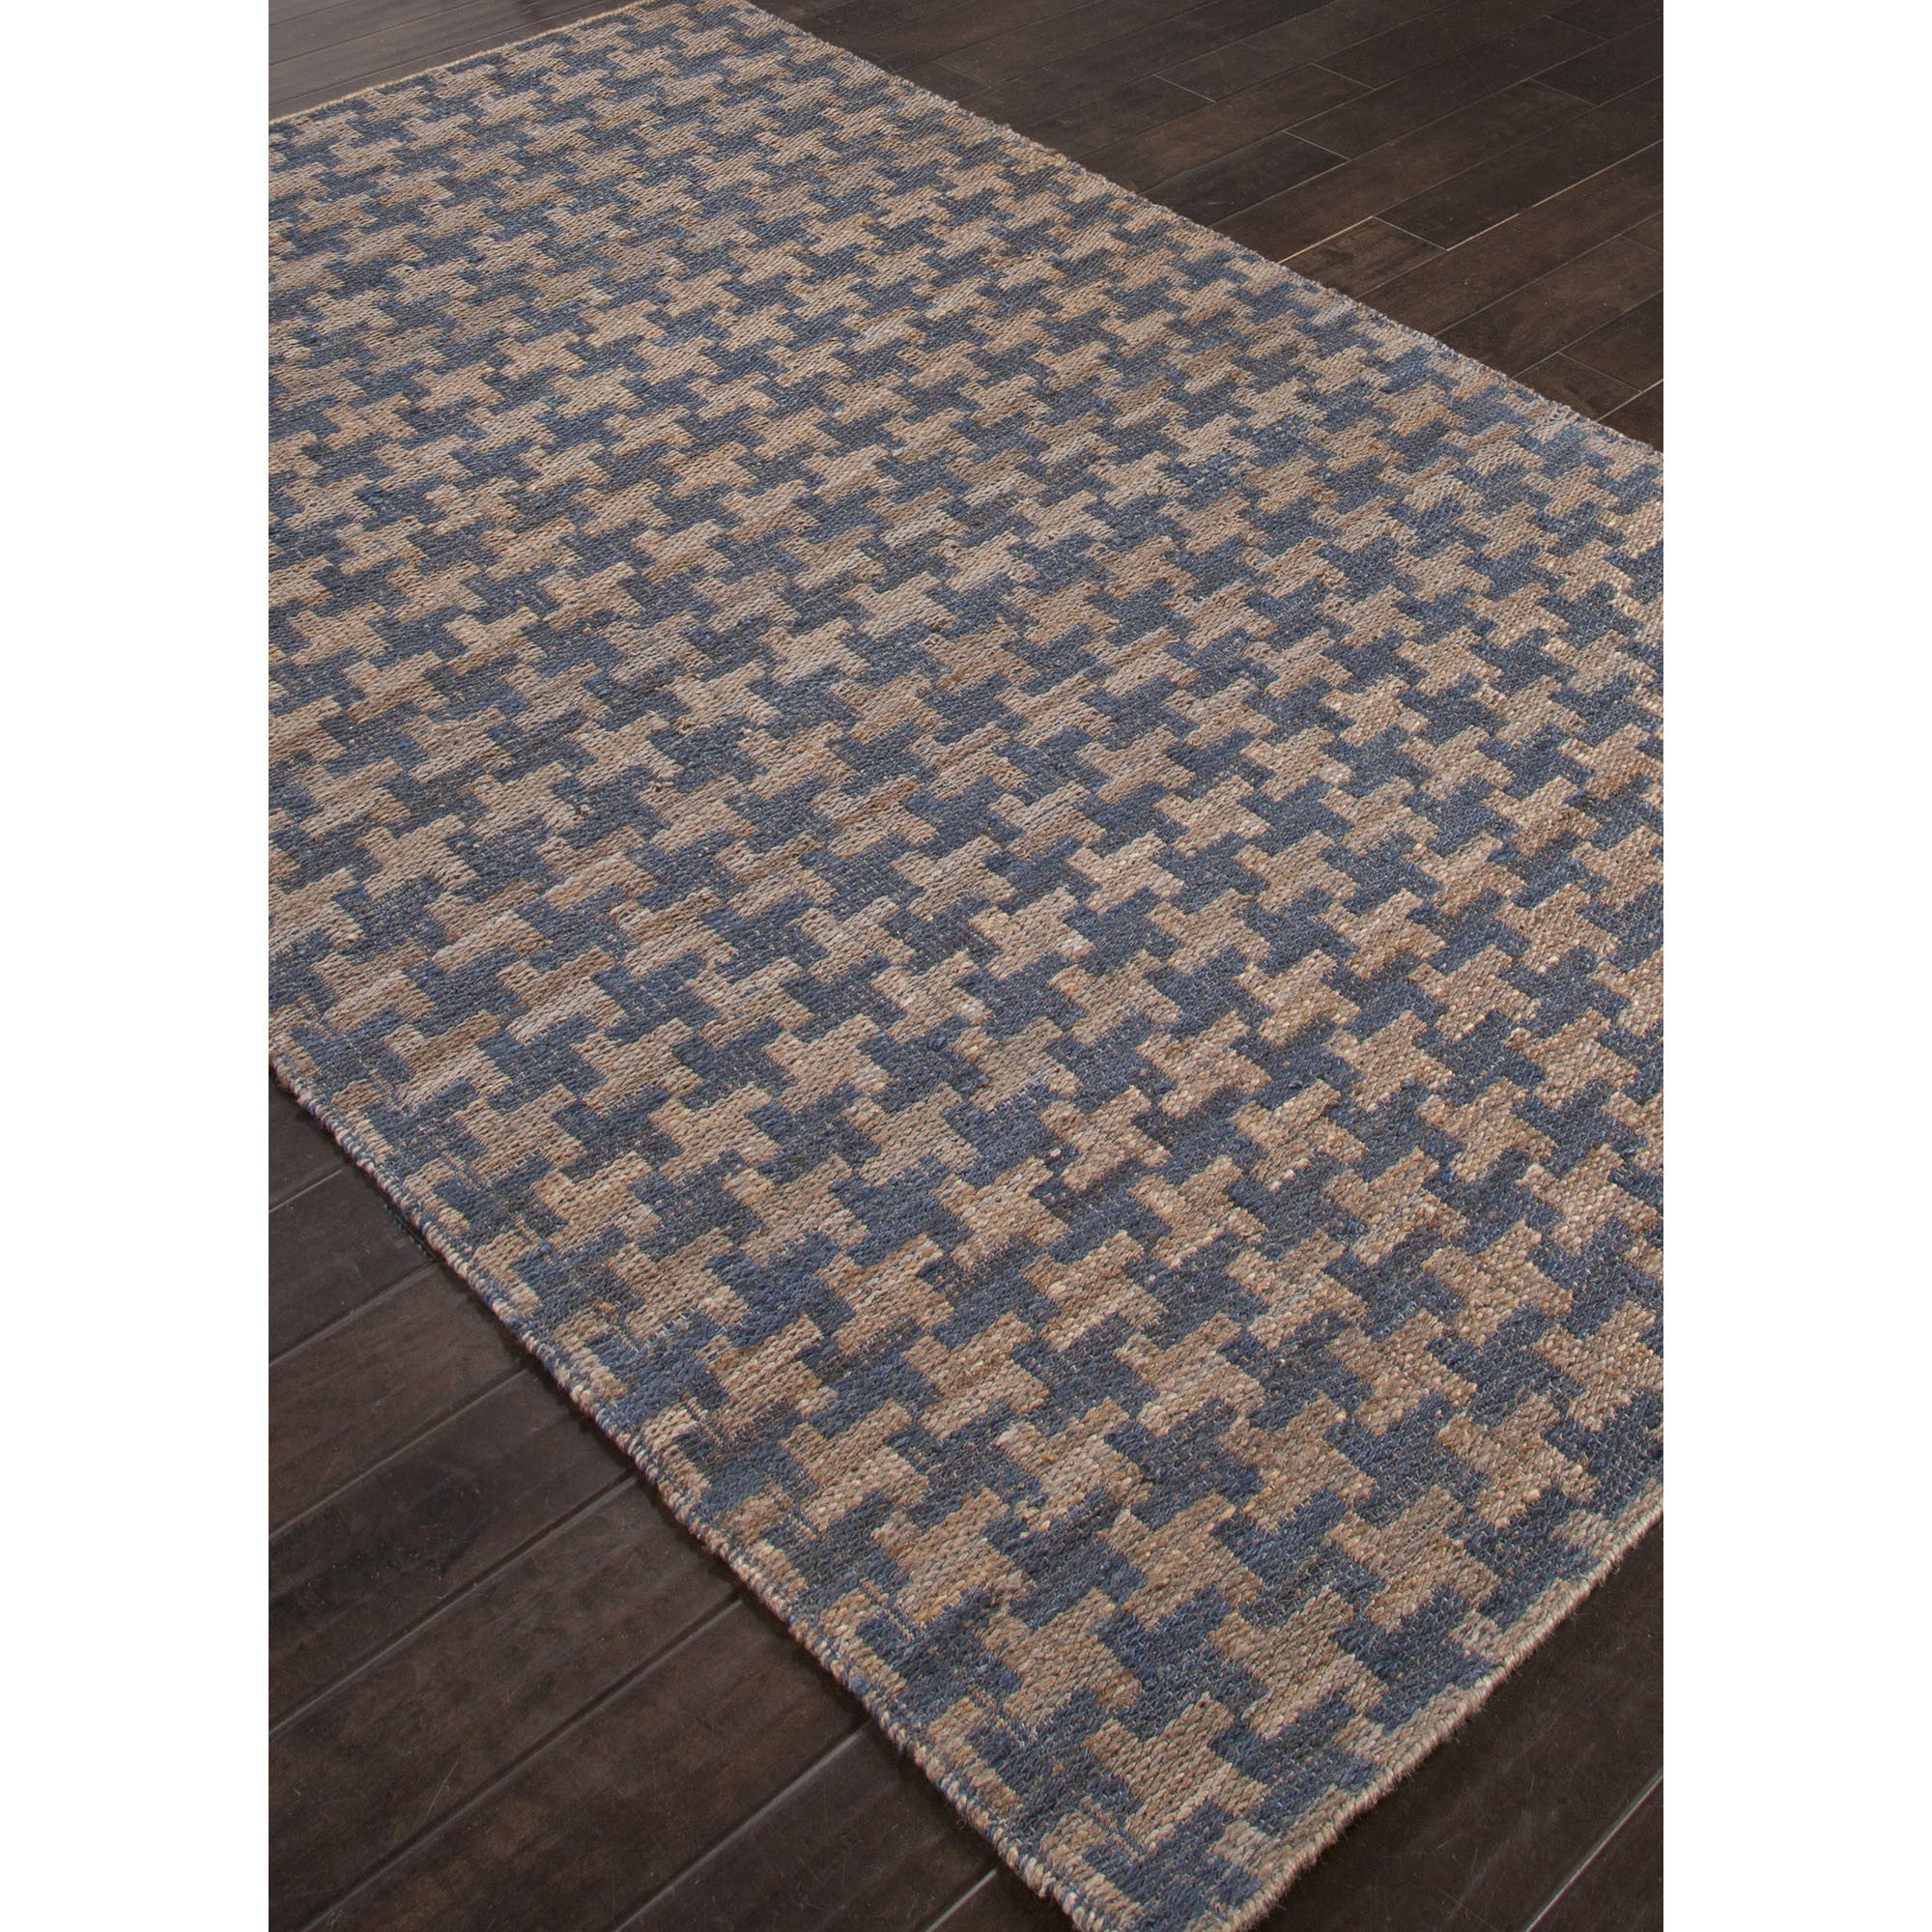 Jaipur Rugs Naturals Solid Pattern Blue/Taupe Hemp Area